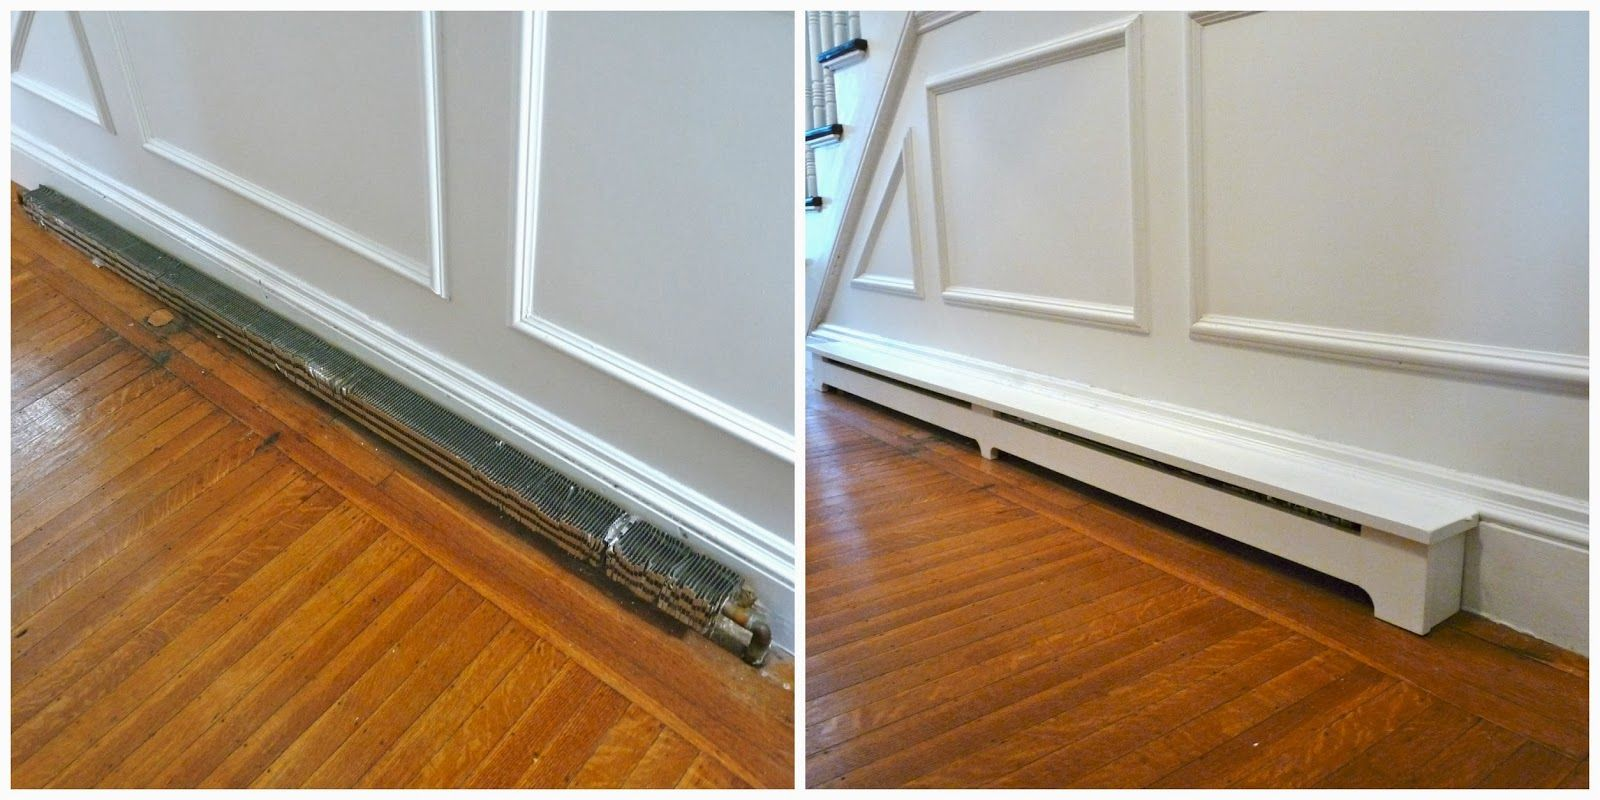 Superb Transform Your Rusty Baseboards With Baseboard Covers From Neat Heat    Http://unbouncepages.com/neatheat/ | DIY | Pinterest | Baseboard, House And  Baseboard ...